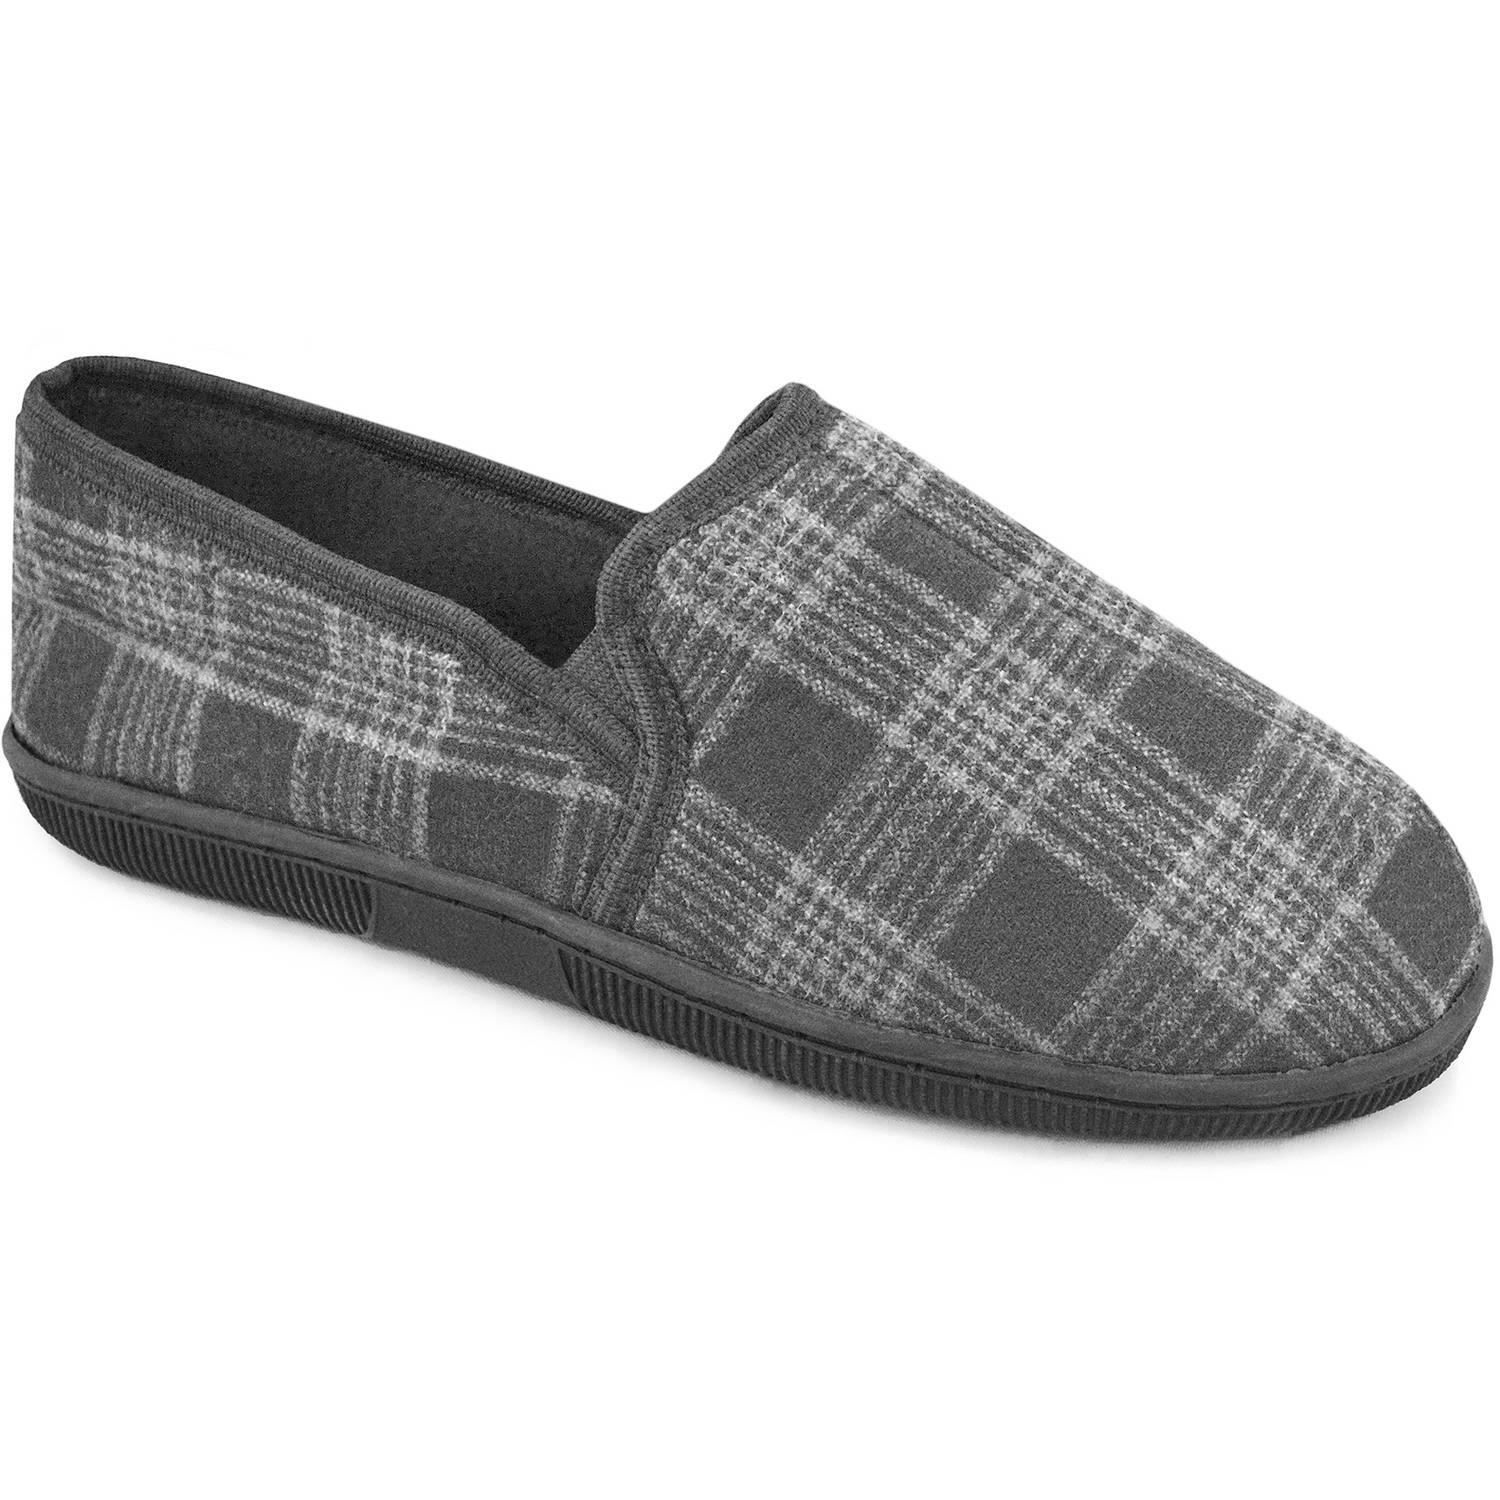 Muk Luks Men's Plaid Slipper